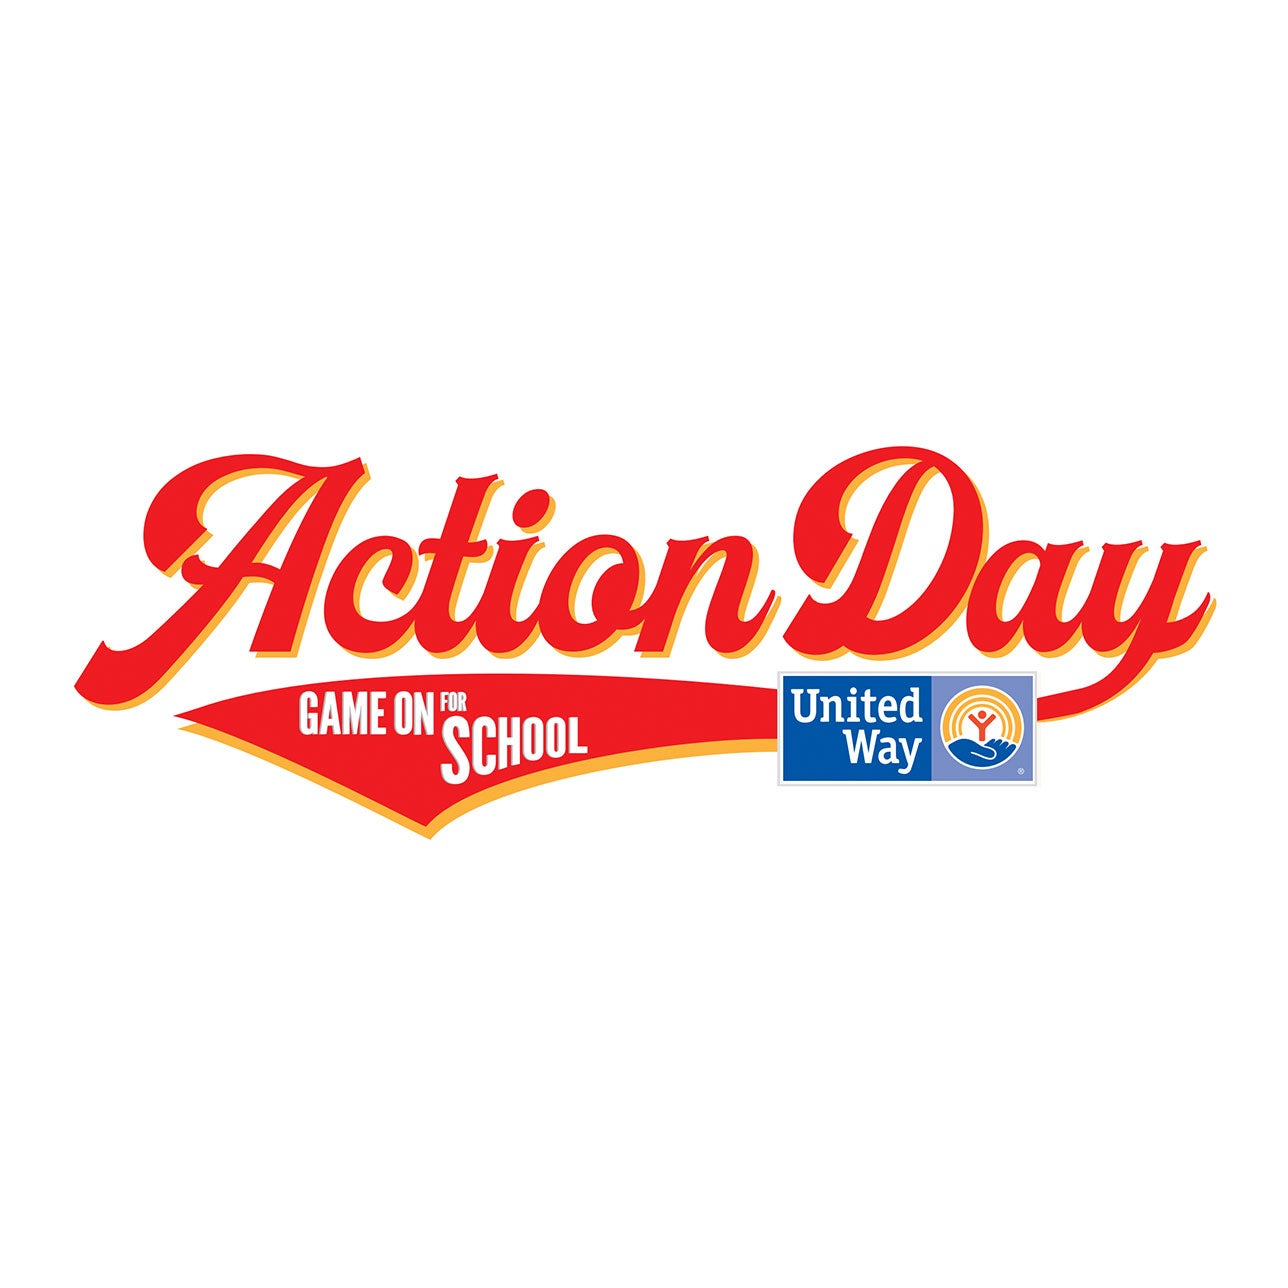 United Way Action Day